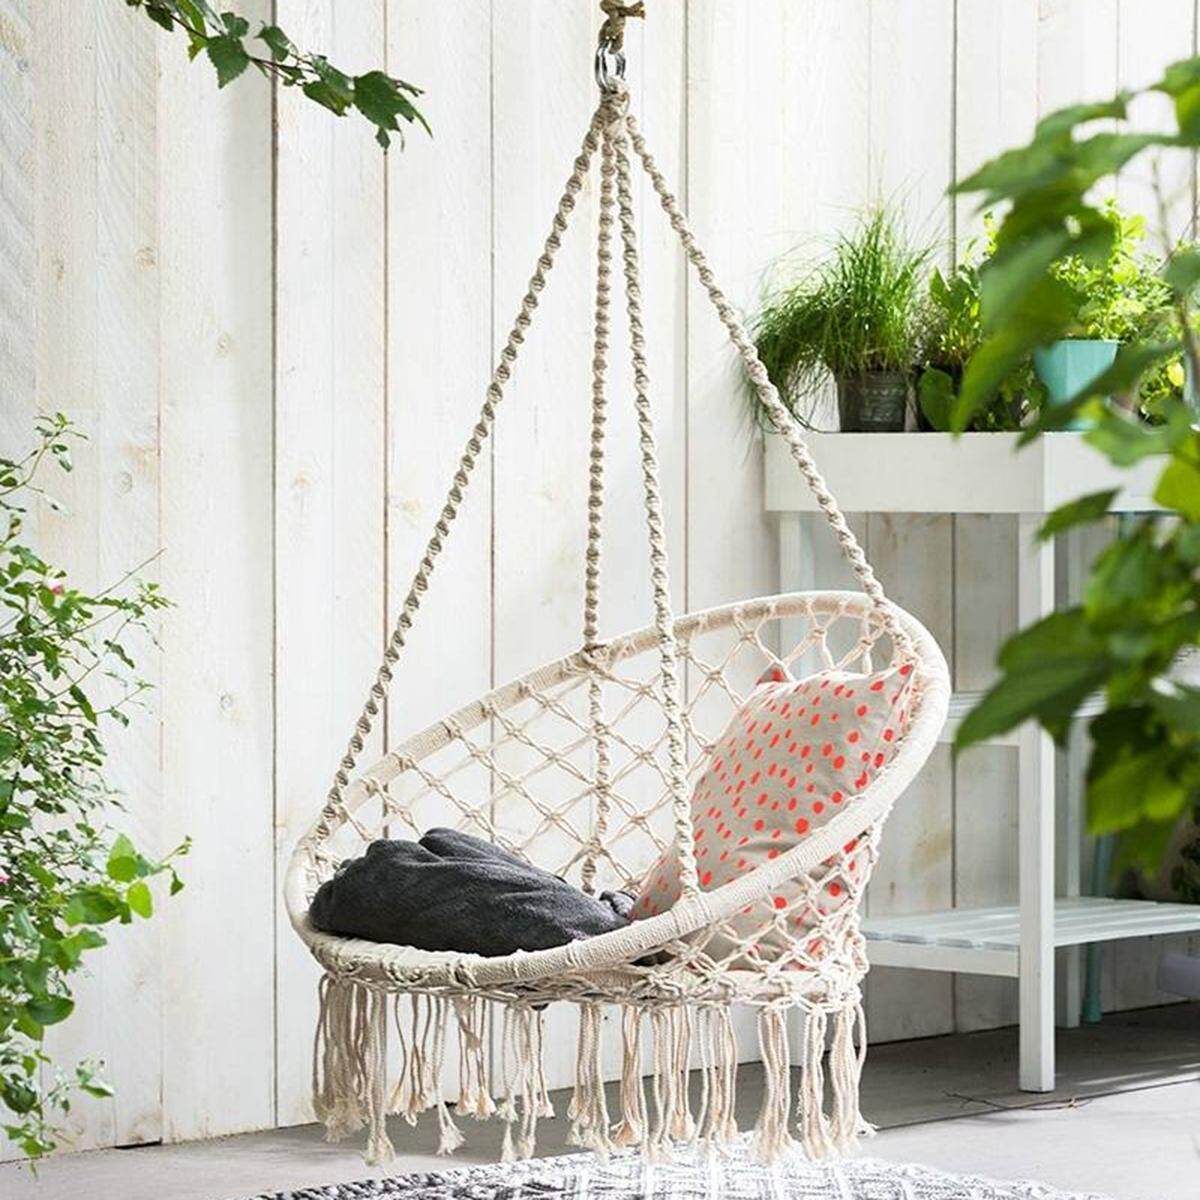 That necessary. automatic swinger for hammocks have hit